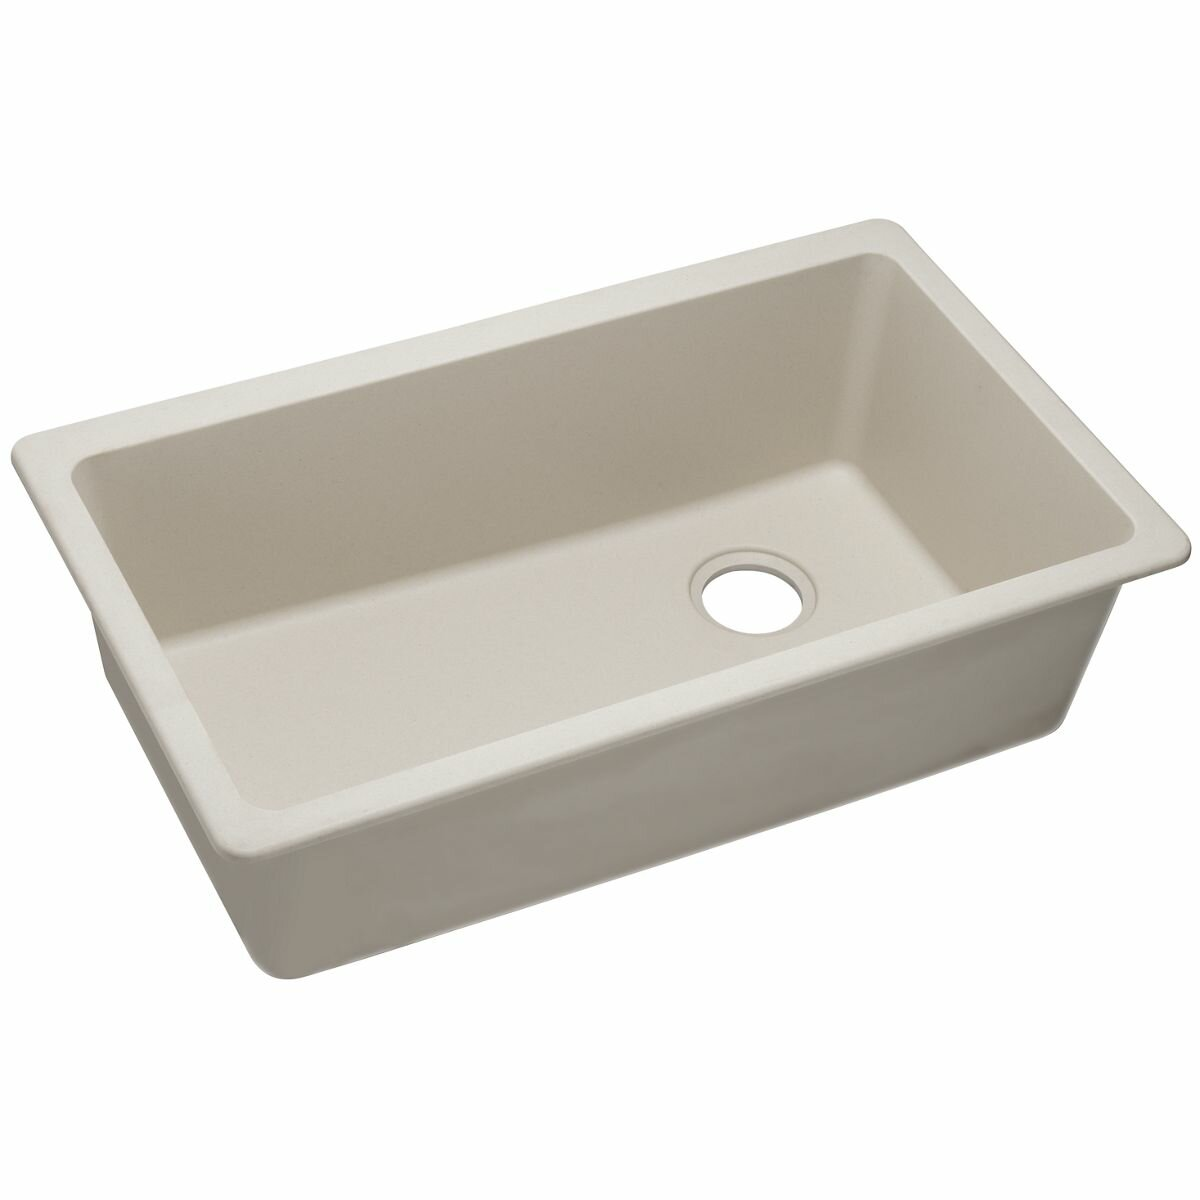 Quartz Classic Single Bowl Undermount Kitchen Sink